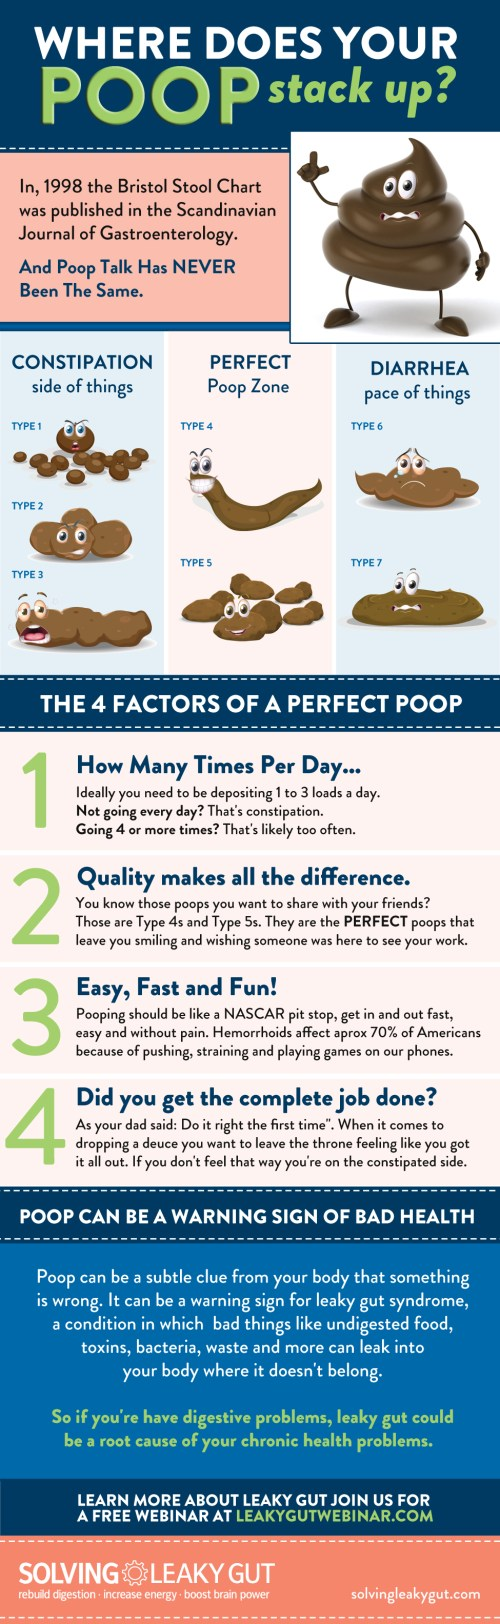 Does your Poop Stack Up?